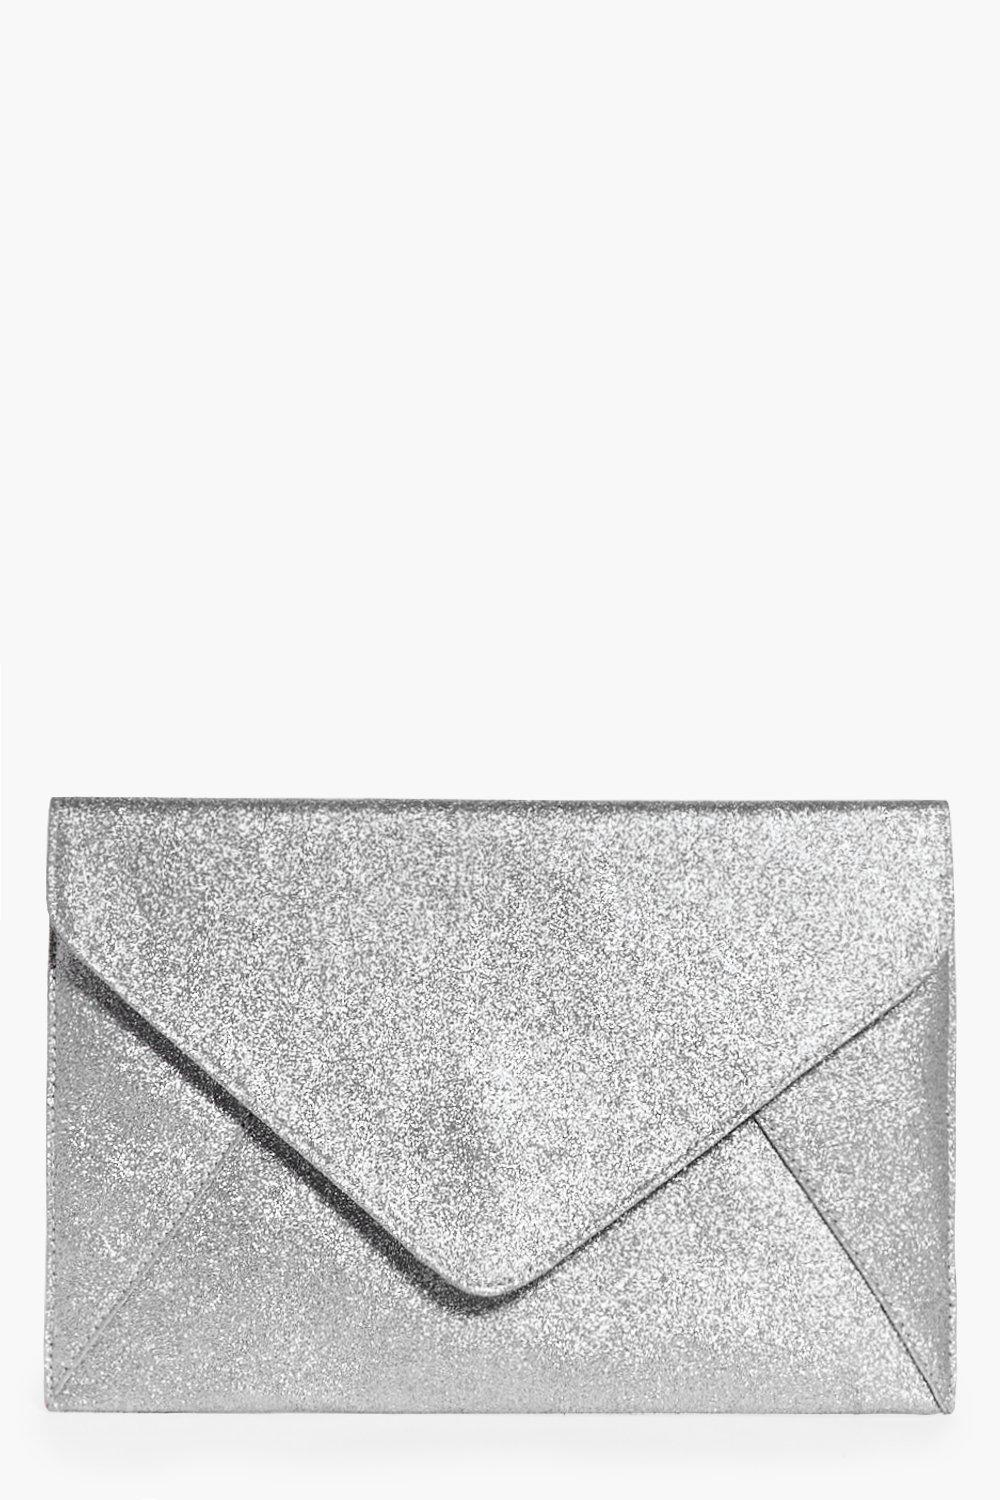 Glitter Envelope Clutch Bag Silver - predominant colour: silver; occasions: evening, occasion; type of pattern: standard; style: clutch; length: hand carry; size: standard; material: faux leather; embellishment: glitter; pattern: plain; finish: metallic; season: a/w 2016